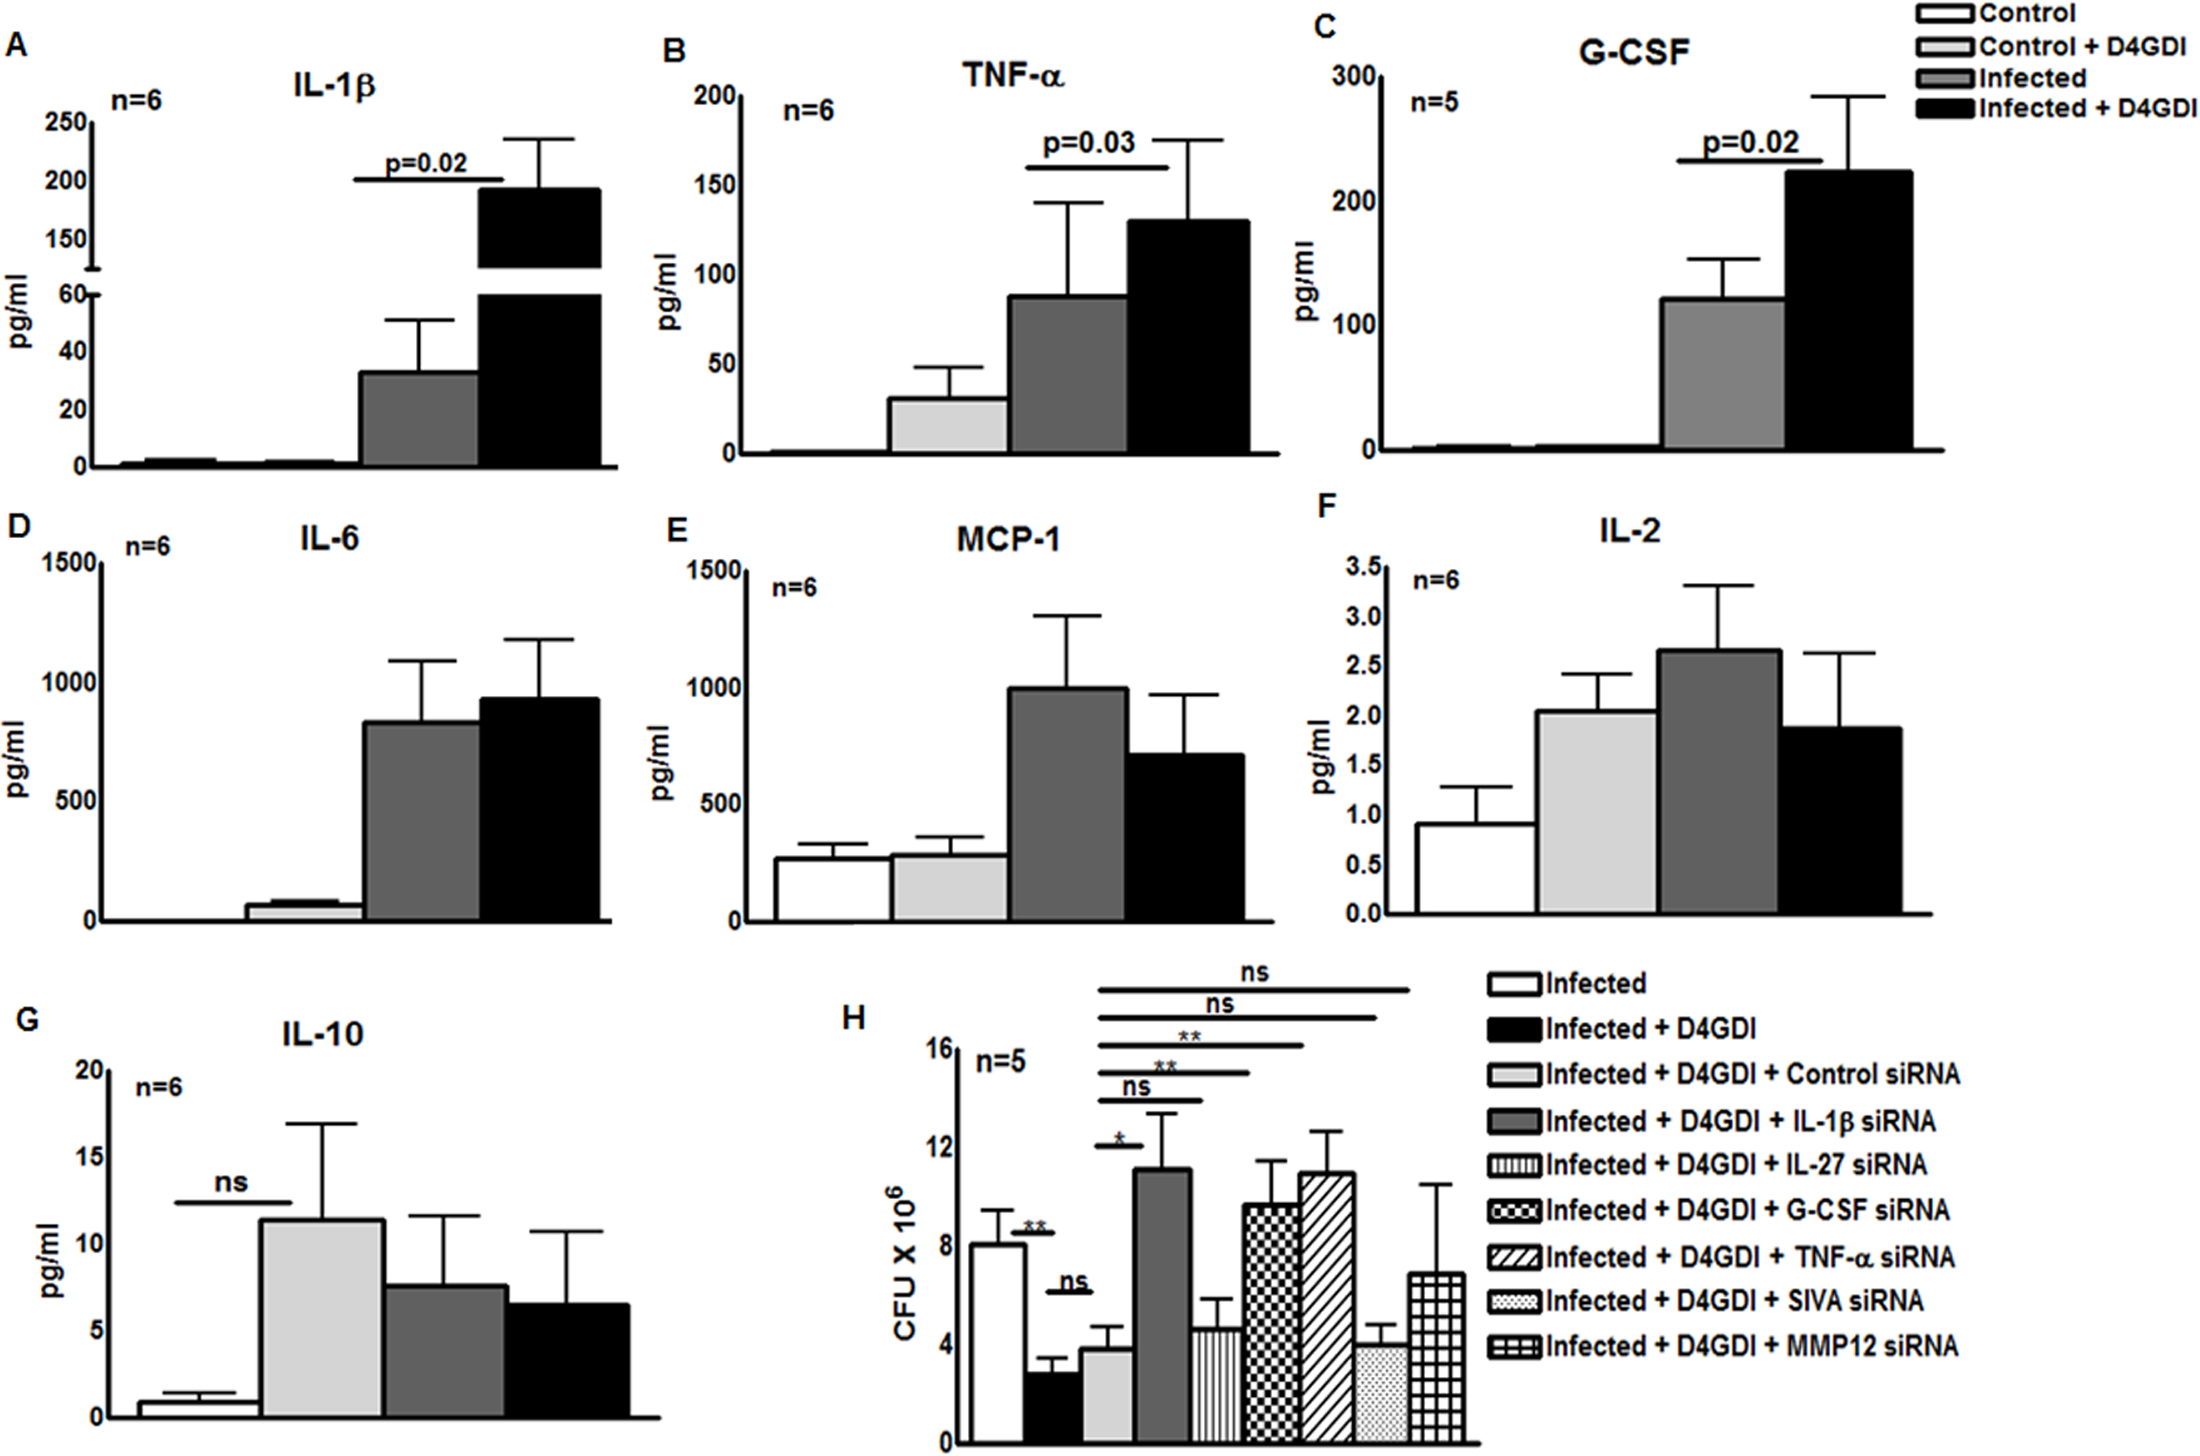 IL-1β and TNF-α contribute to D4GDI-dependent inhibition of <i>M. tb</i> growth.